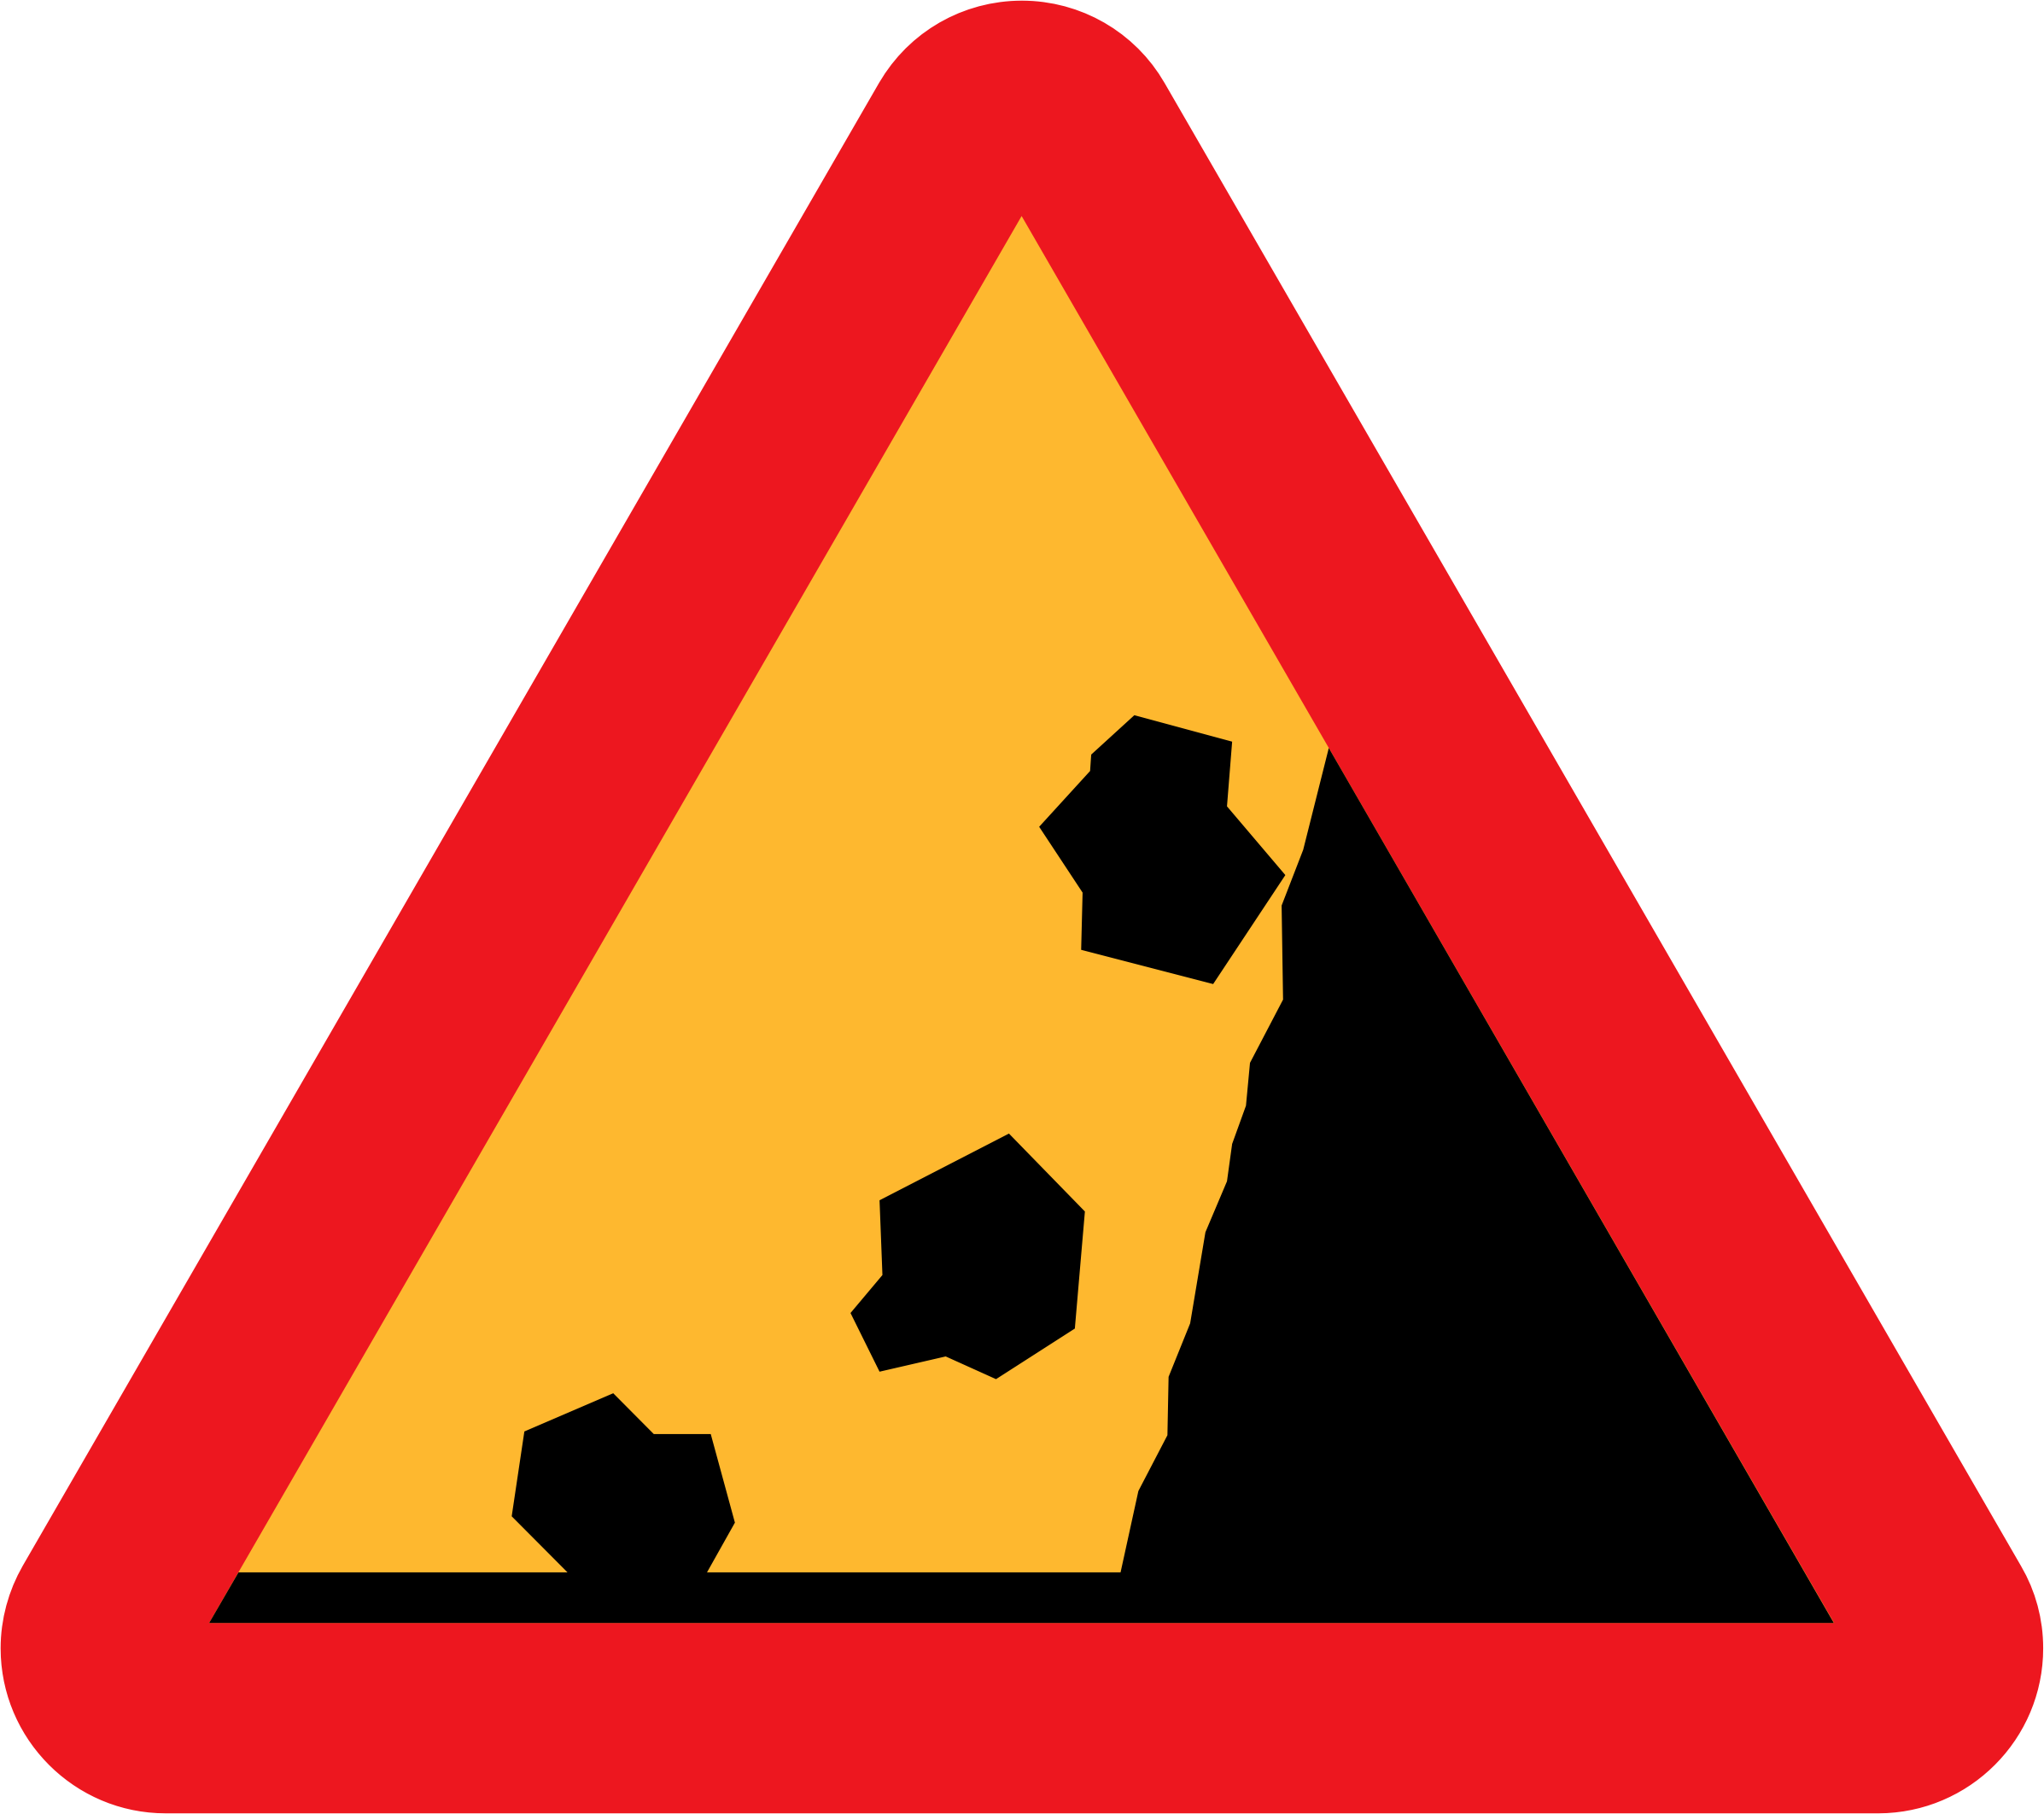 Falling Rocks from RHS roadsign by ryanlerch